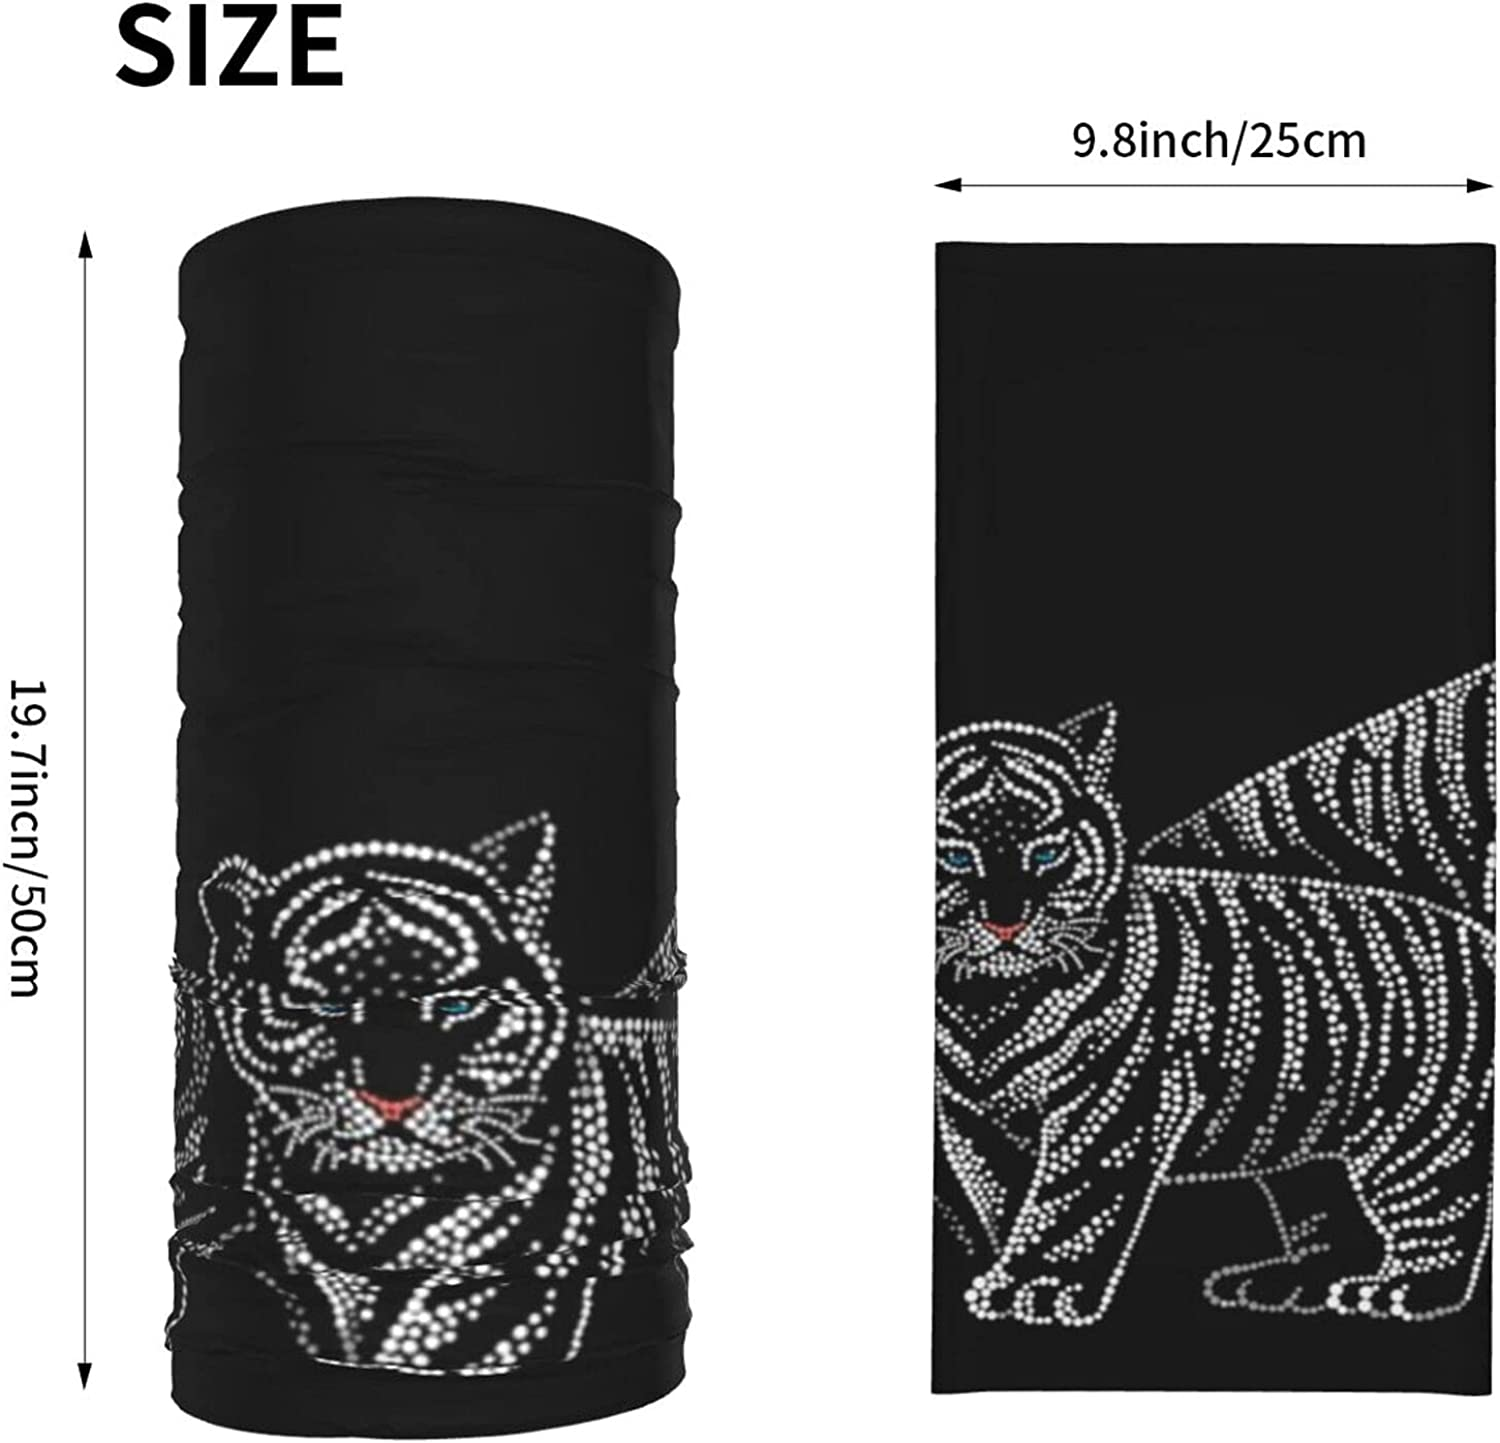 Tiger Cub Point Animal Wildlife Summer Ice Silk Breathable Face Mask Neck Gaiter Scarf Bandanas for Fishing,Hiking,Running,Motorcycle and Daily Wear